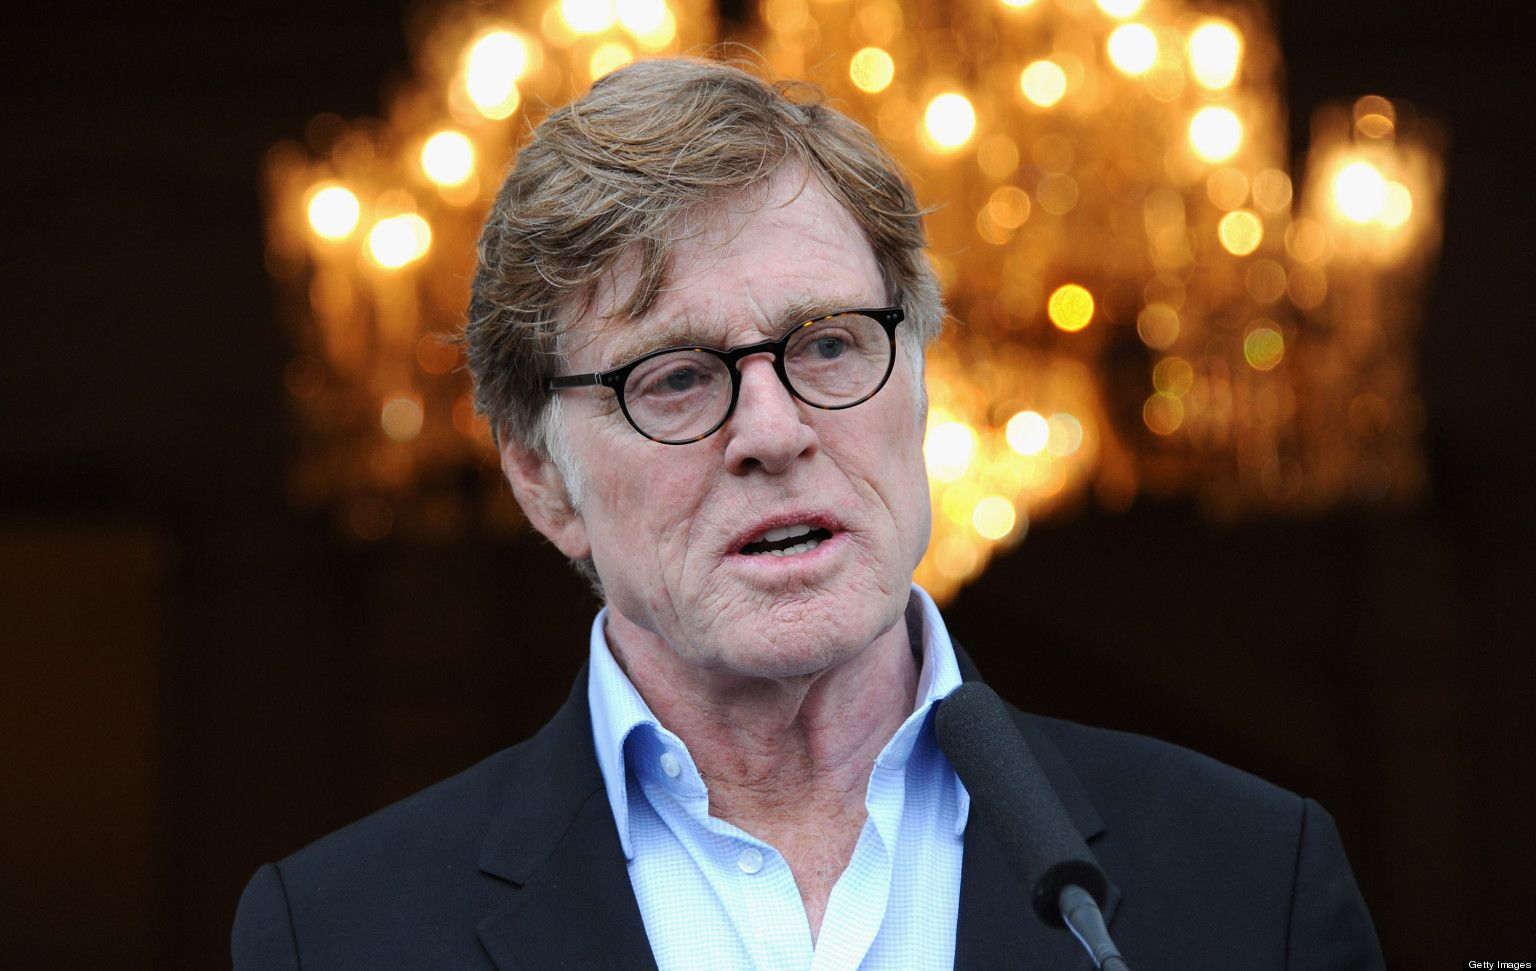 Robert Redford: Up Close and Personal